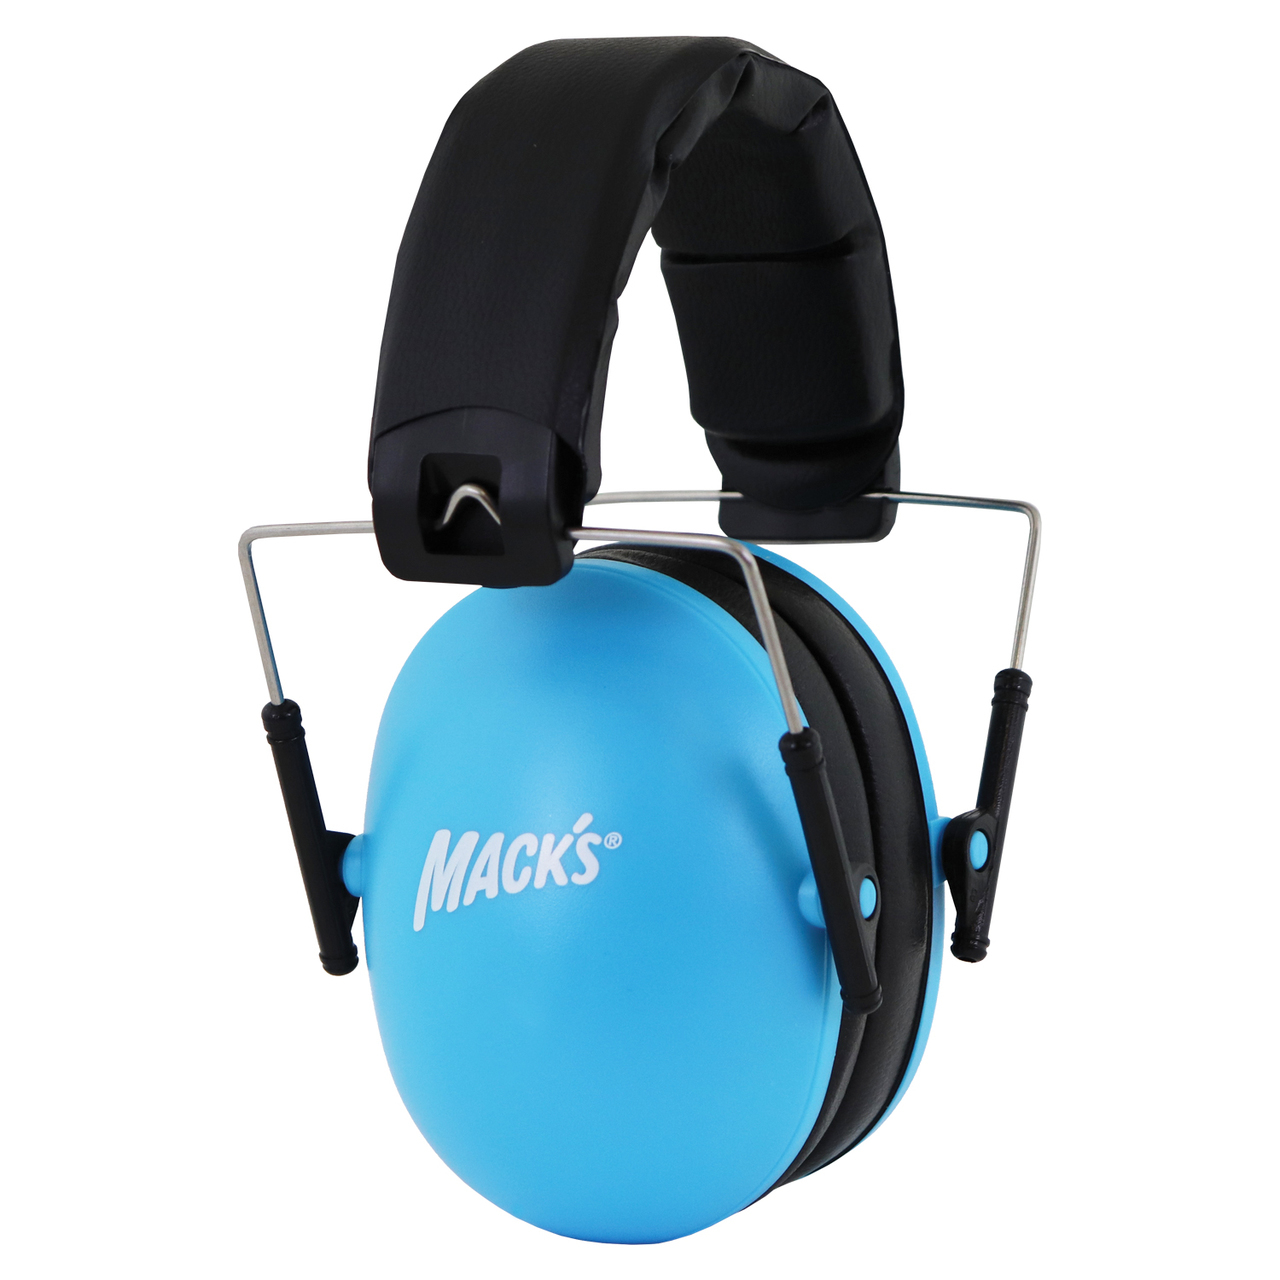 Macks Kids Size Earmuffs With Earplugs Sleep And Sound